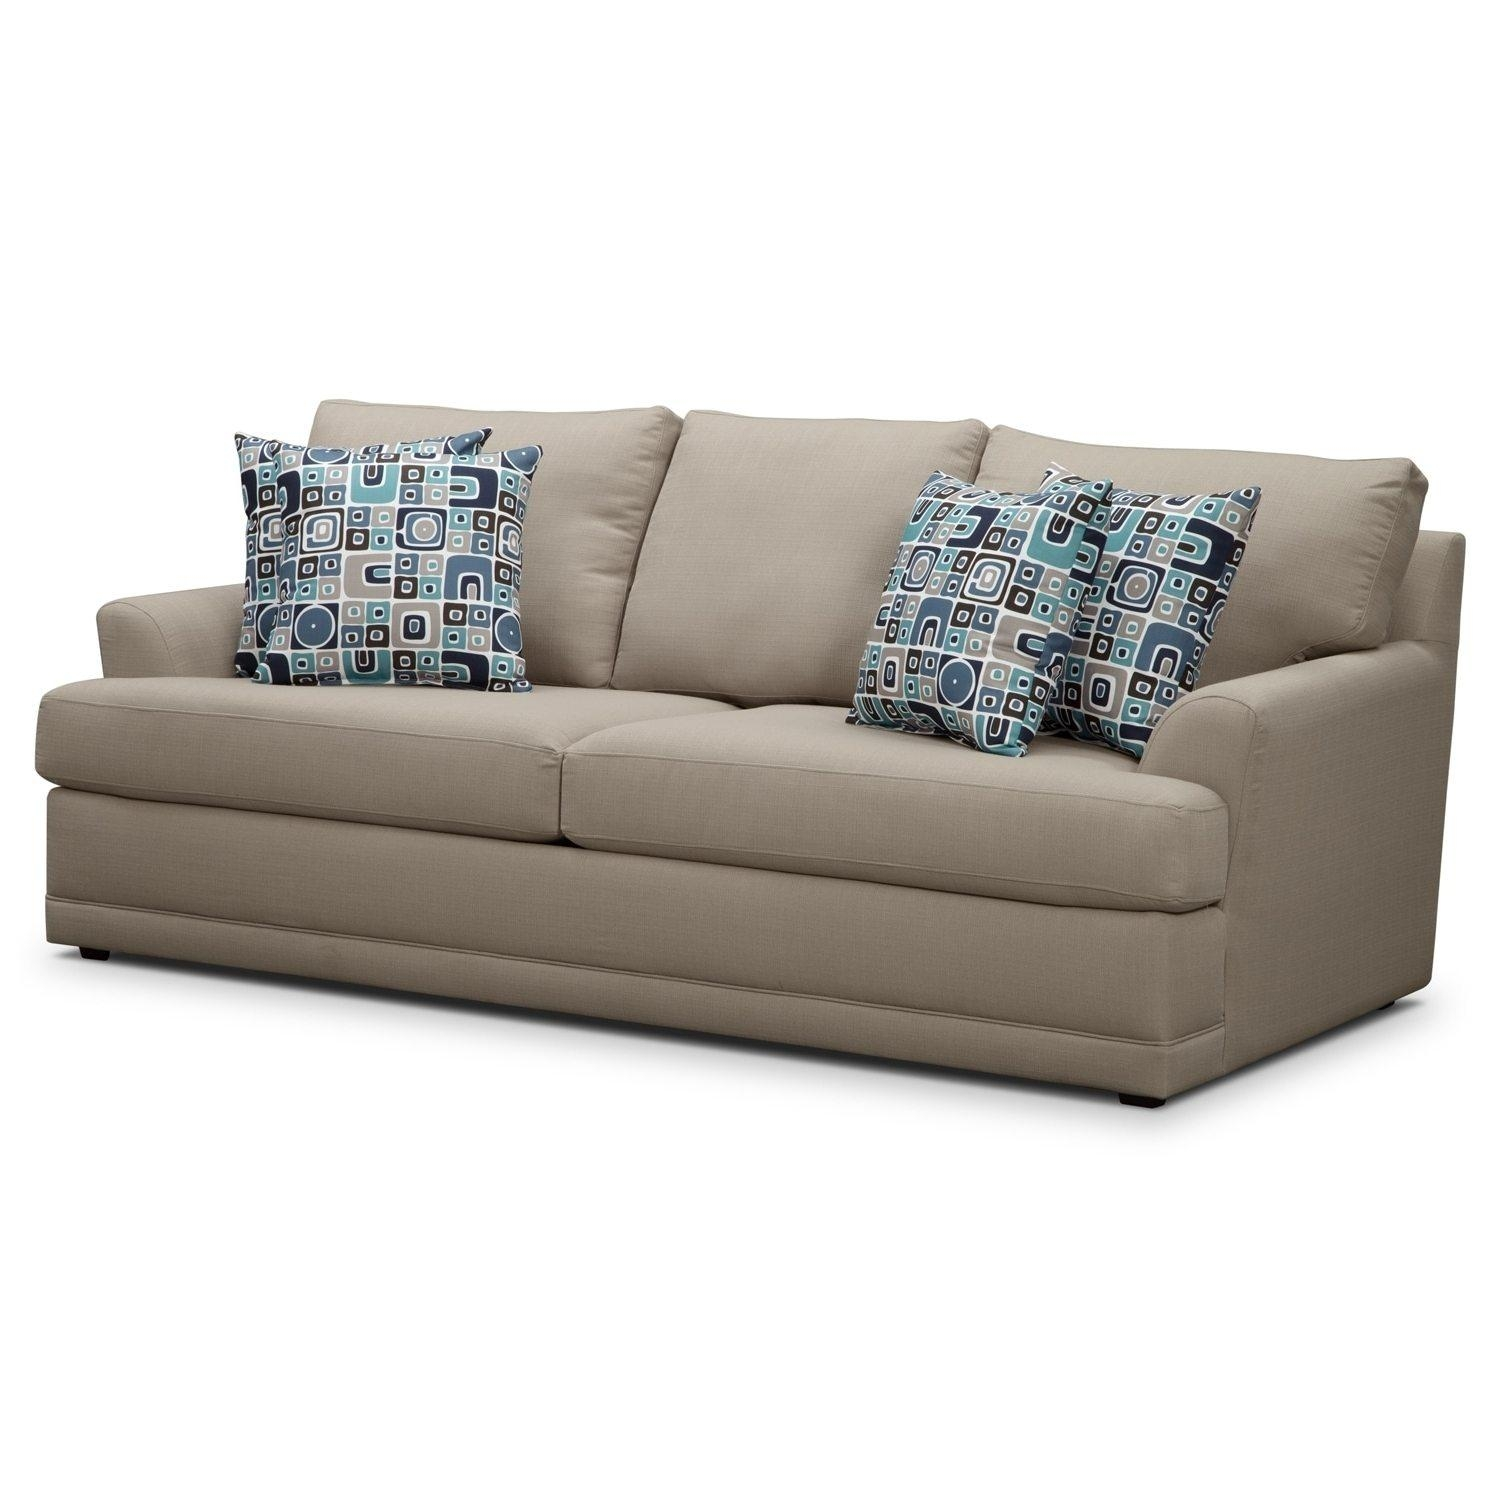 Davis Sleeper Sofa With Ideas Hd Images 28316 | Kengire In Davis Sleeper Sofas (Image 14 of 20)